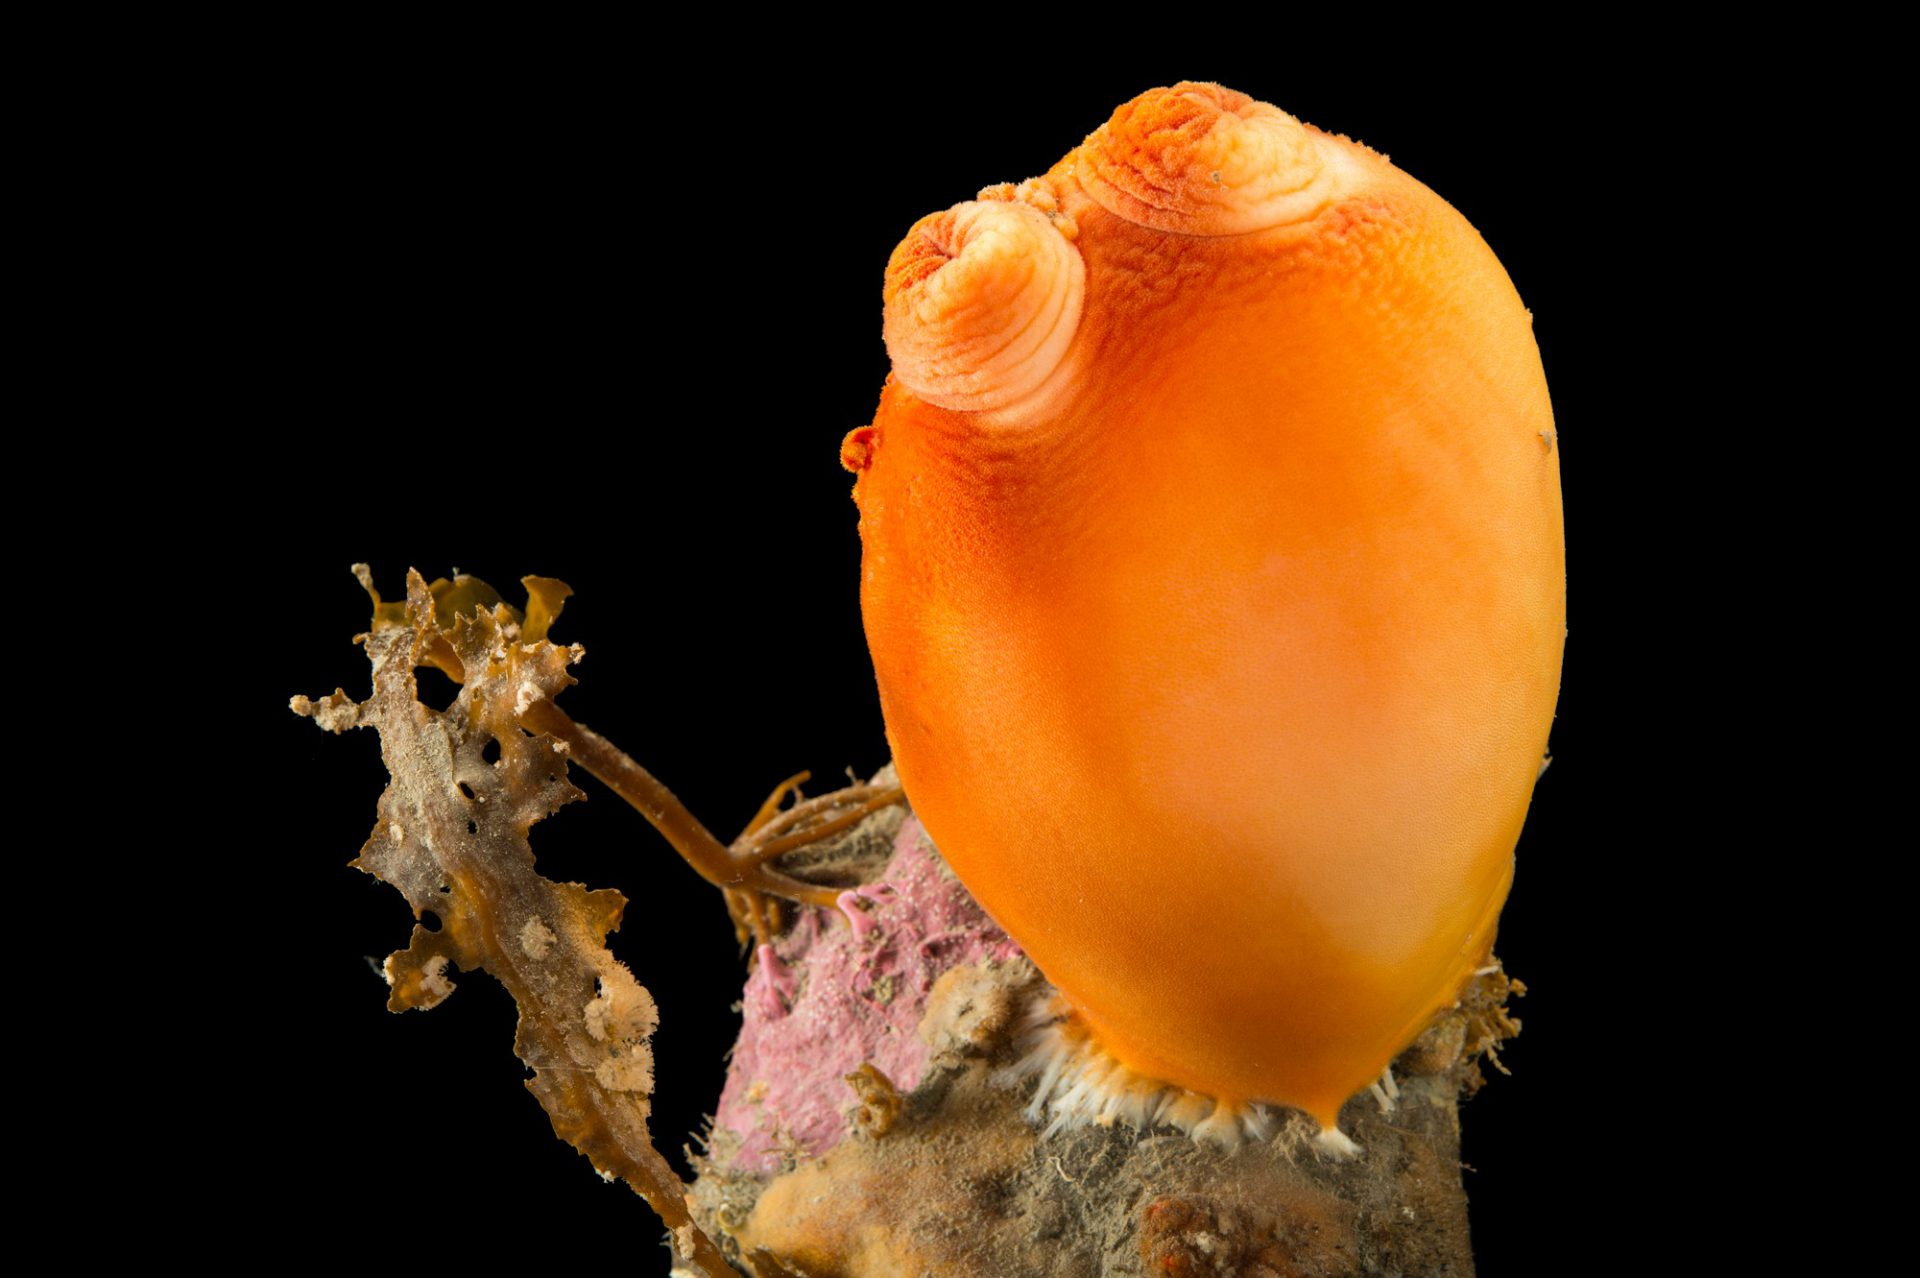 Sea peach, (Halocynthia aurantium), at the Alaska SeaLife Center.